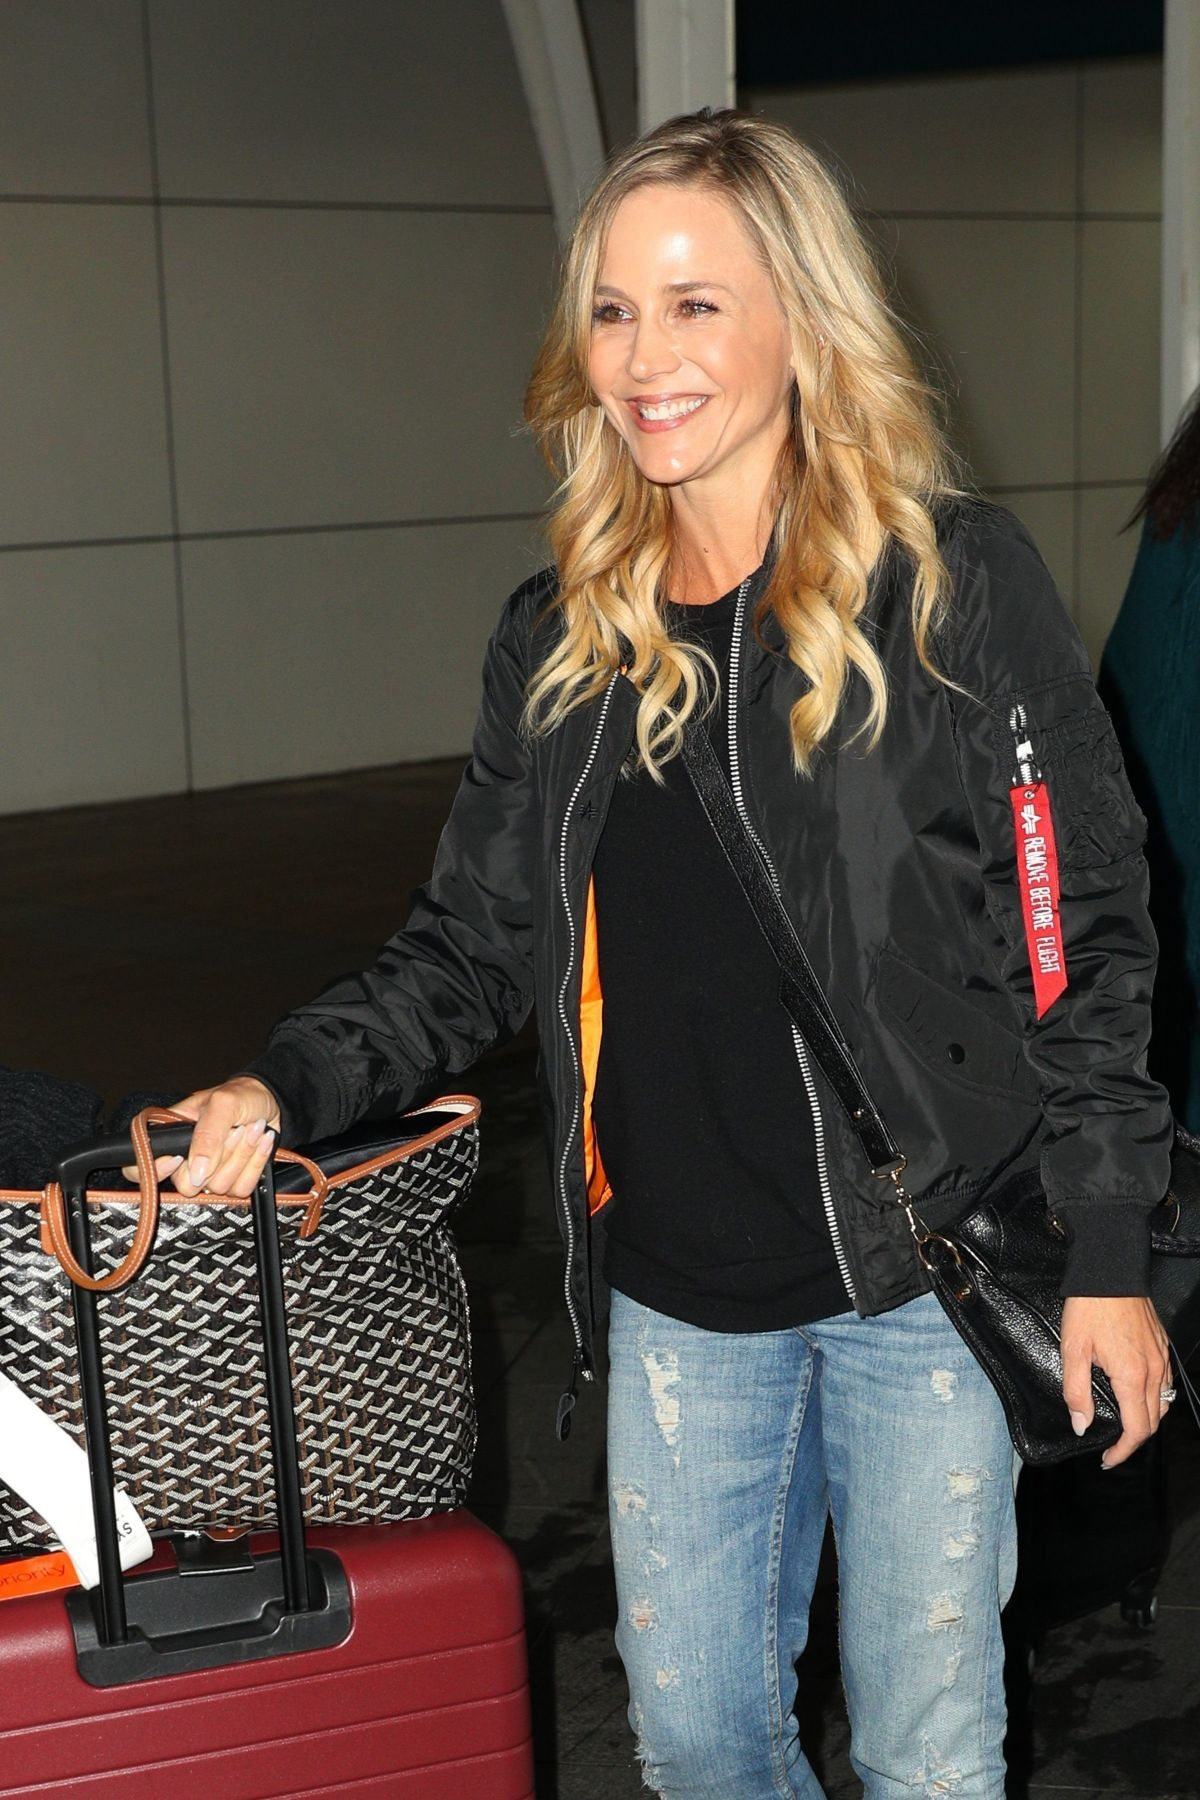 JULIE BENZ at Airport in Sydney 06/15/2017